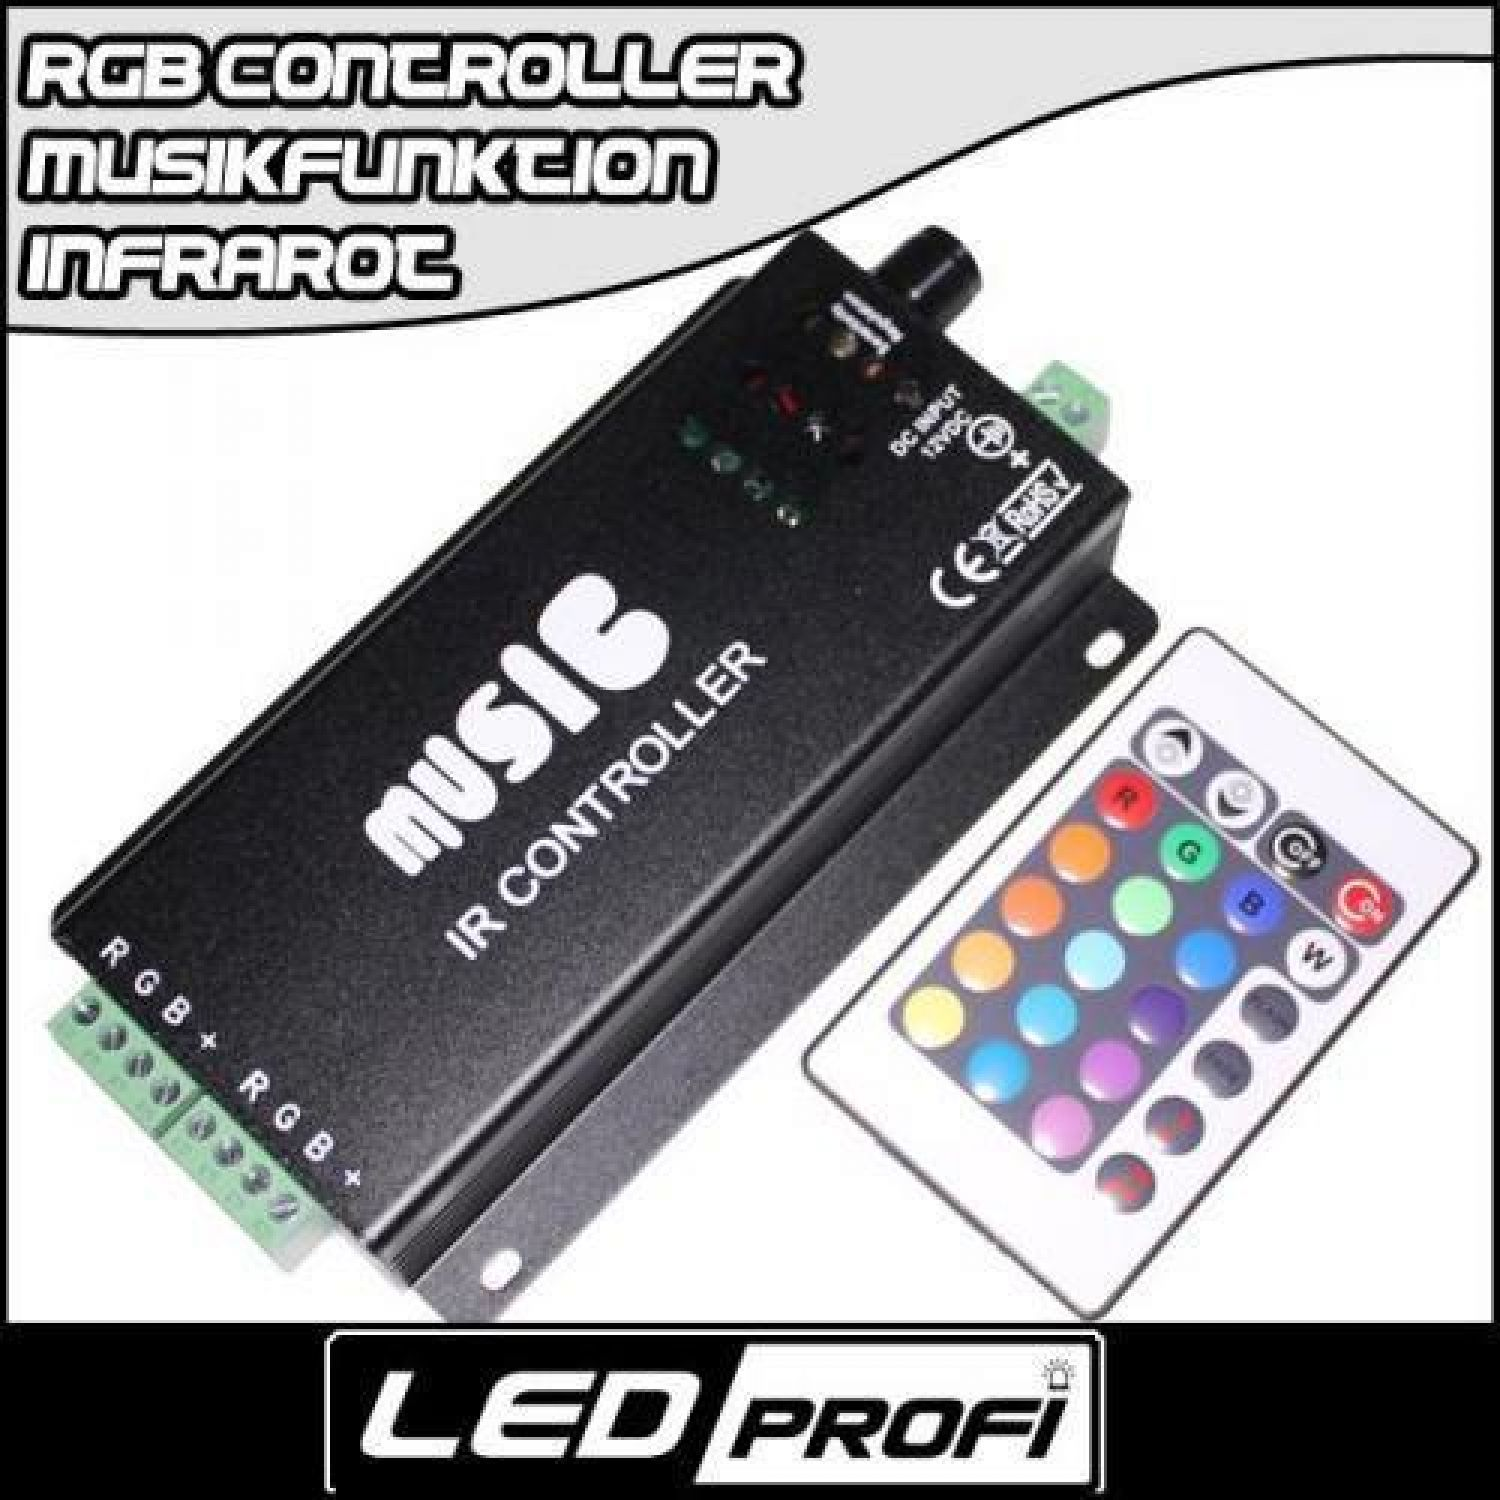 rgb led musik controller mit 24 tasten infrarot fernbedienung 180w streifen 5050 ebay. Black Bedroom Furniture Sets. Home Design Ideas